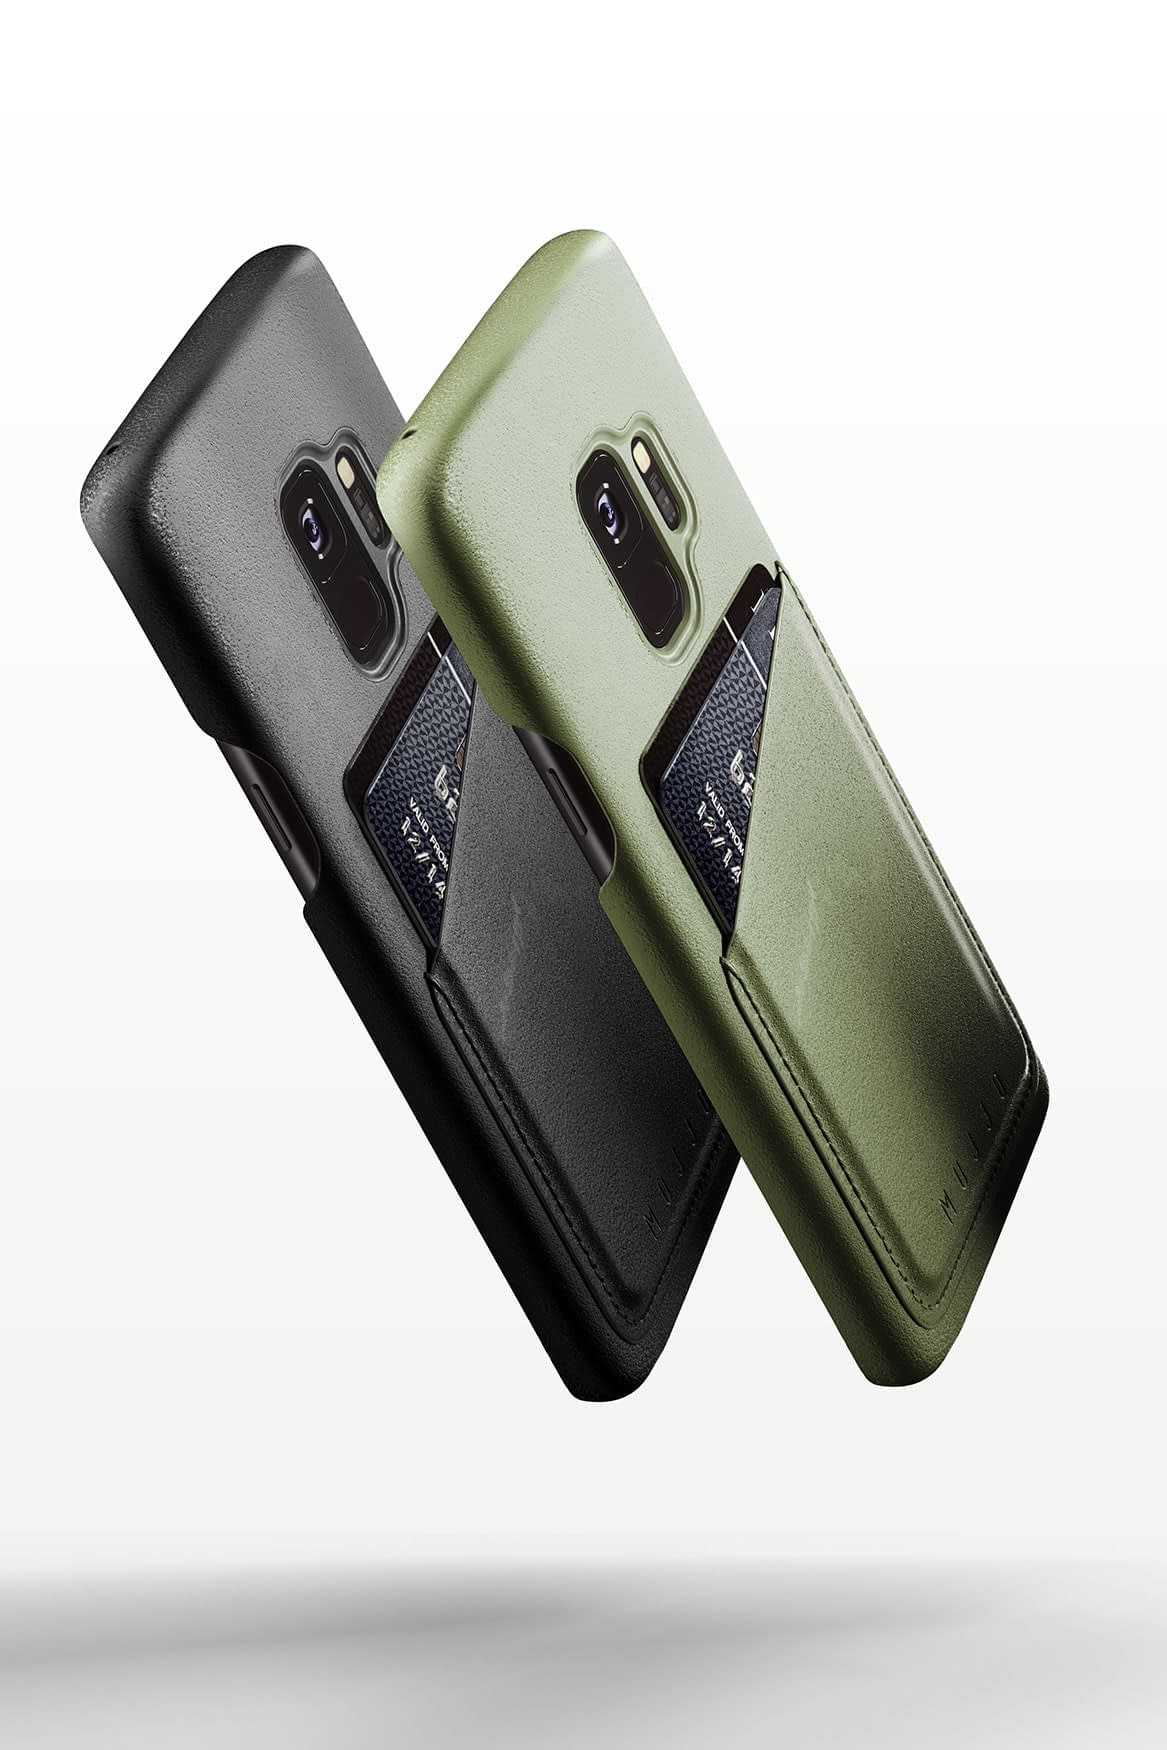 Full leather wallet case for Galaxy S9 Line up 01